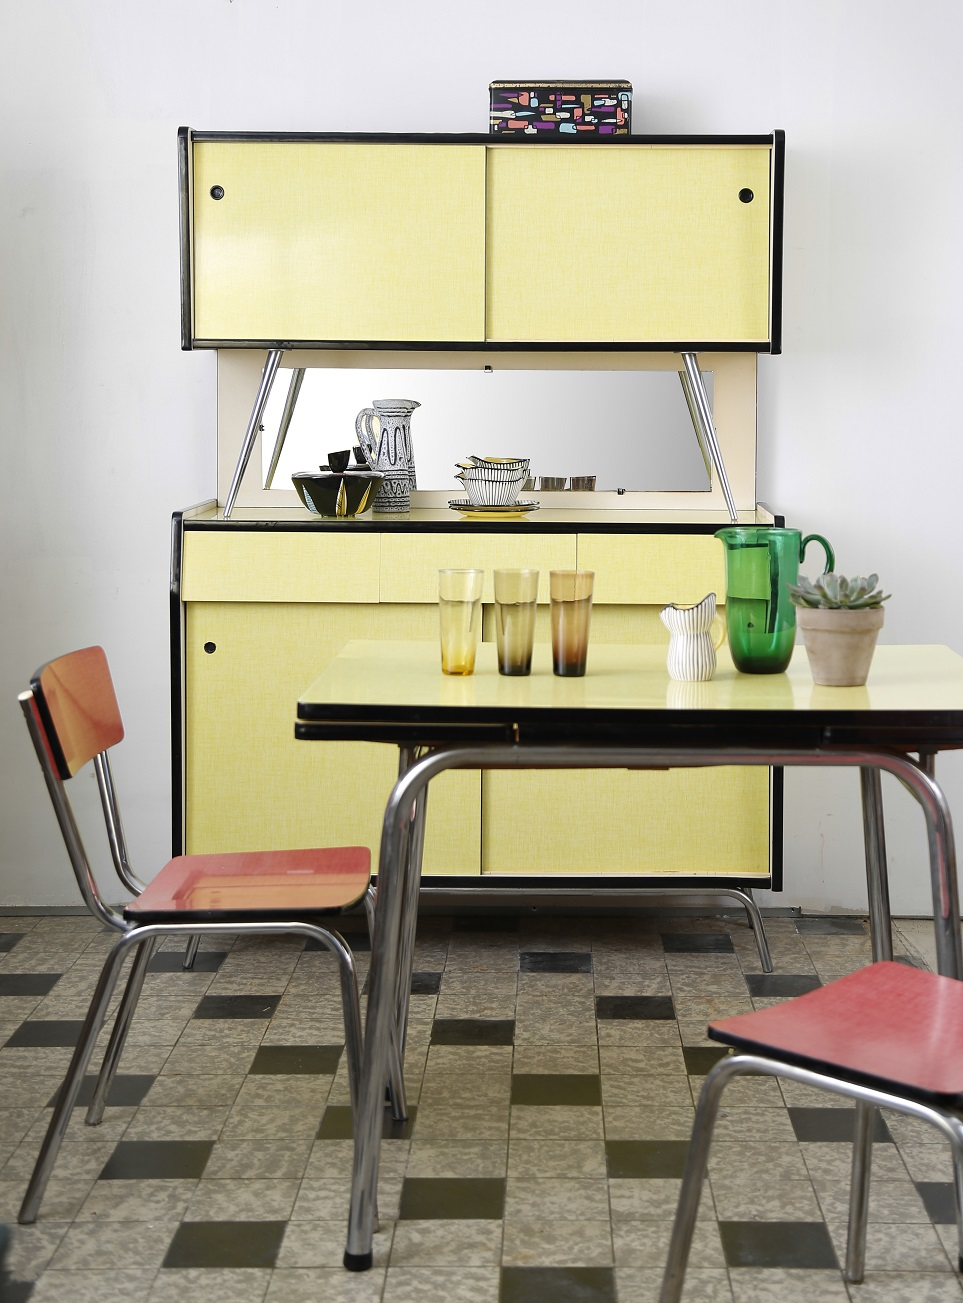 Buffet et table de cuisine en formica jaune ann es 1960 for Buffet cuisine en formica